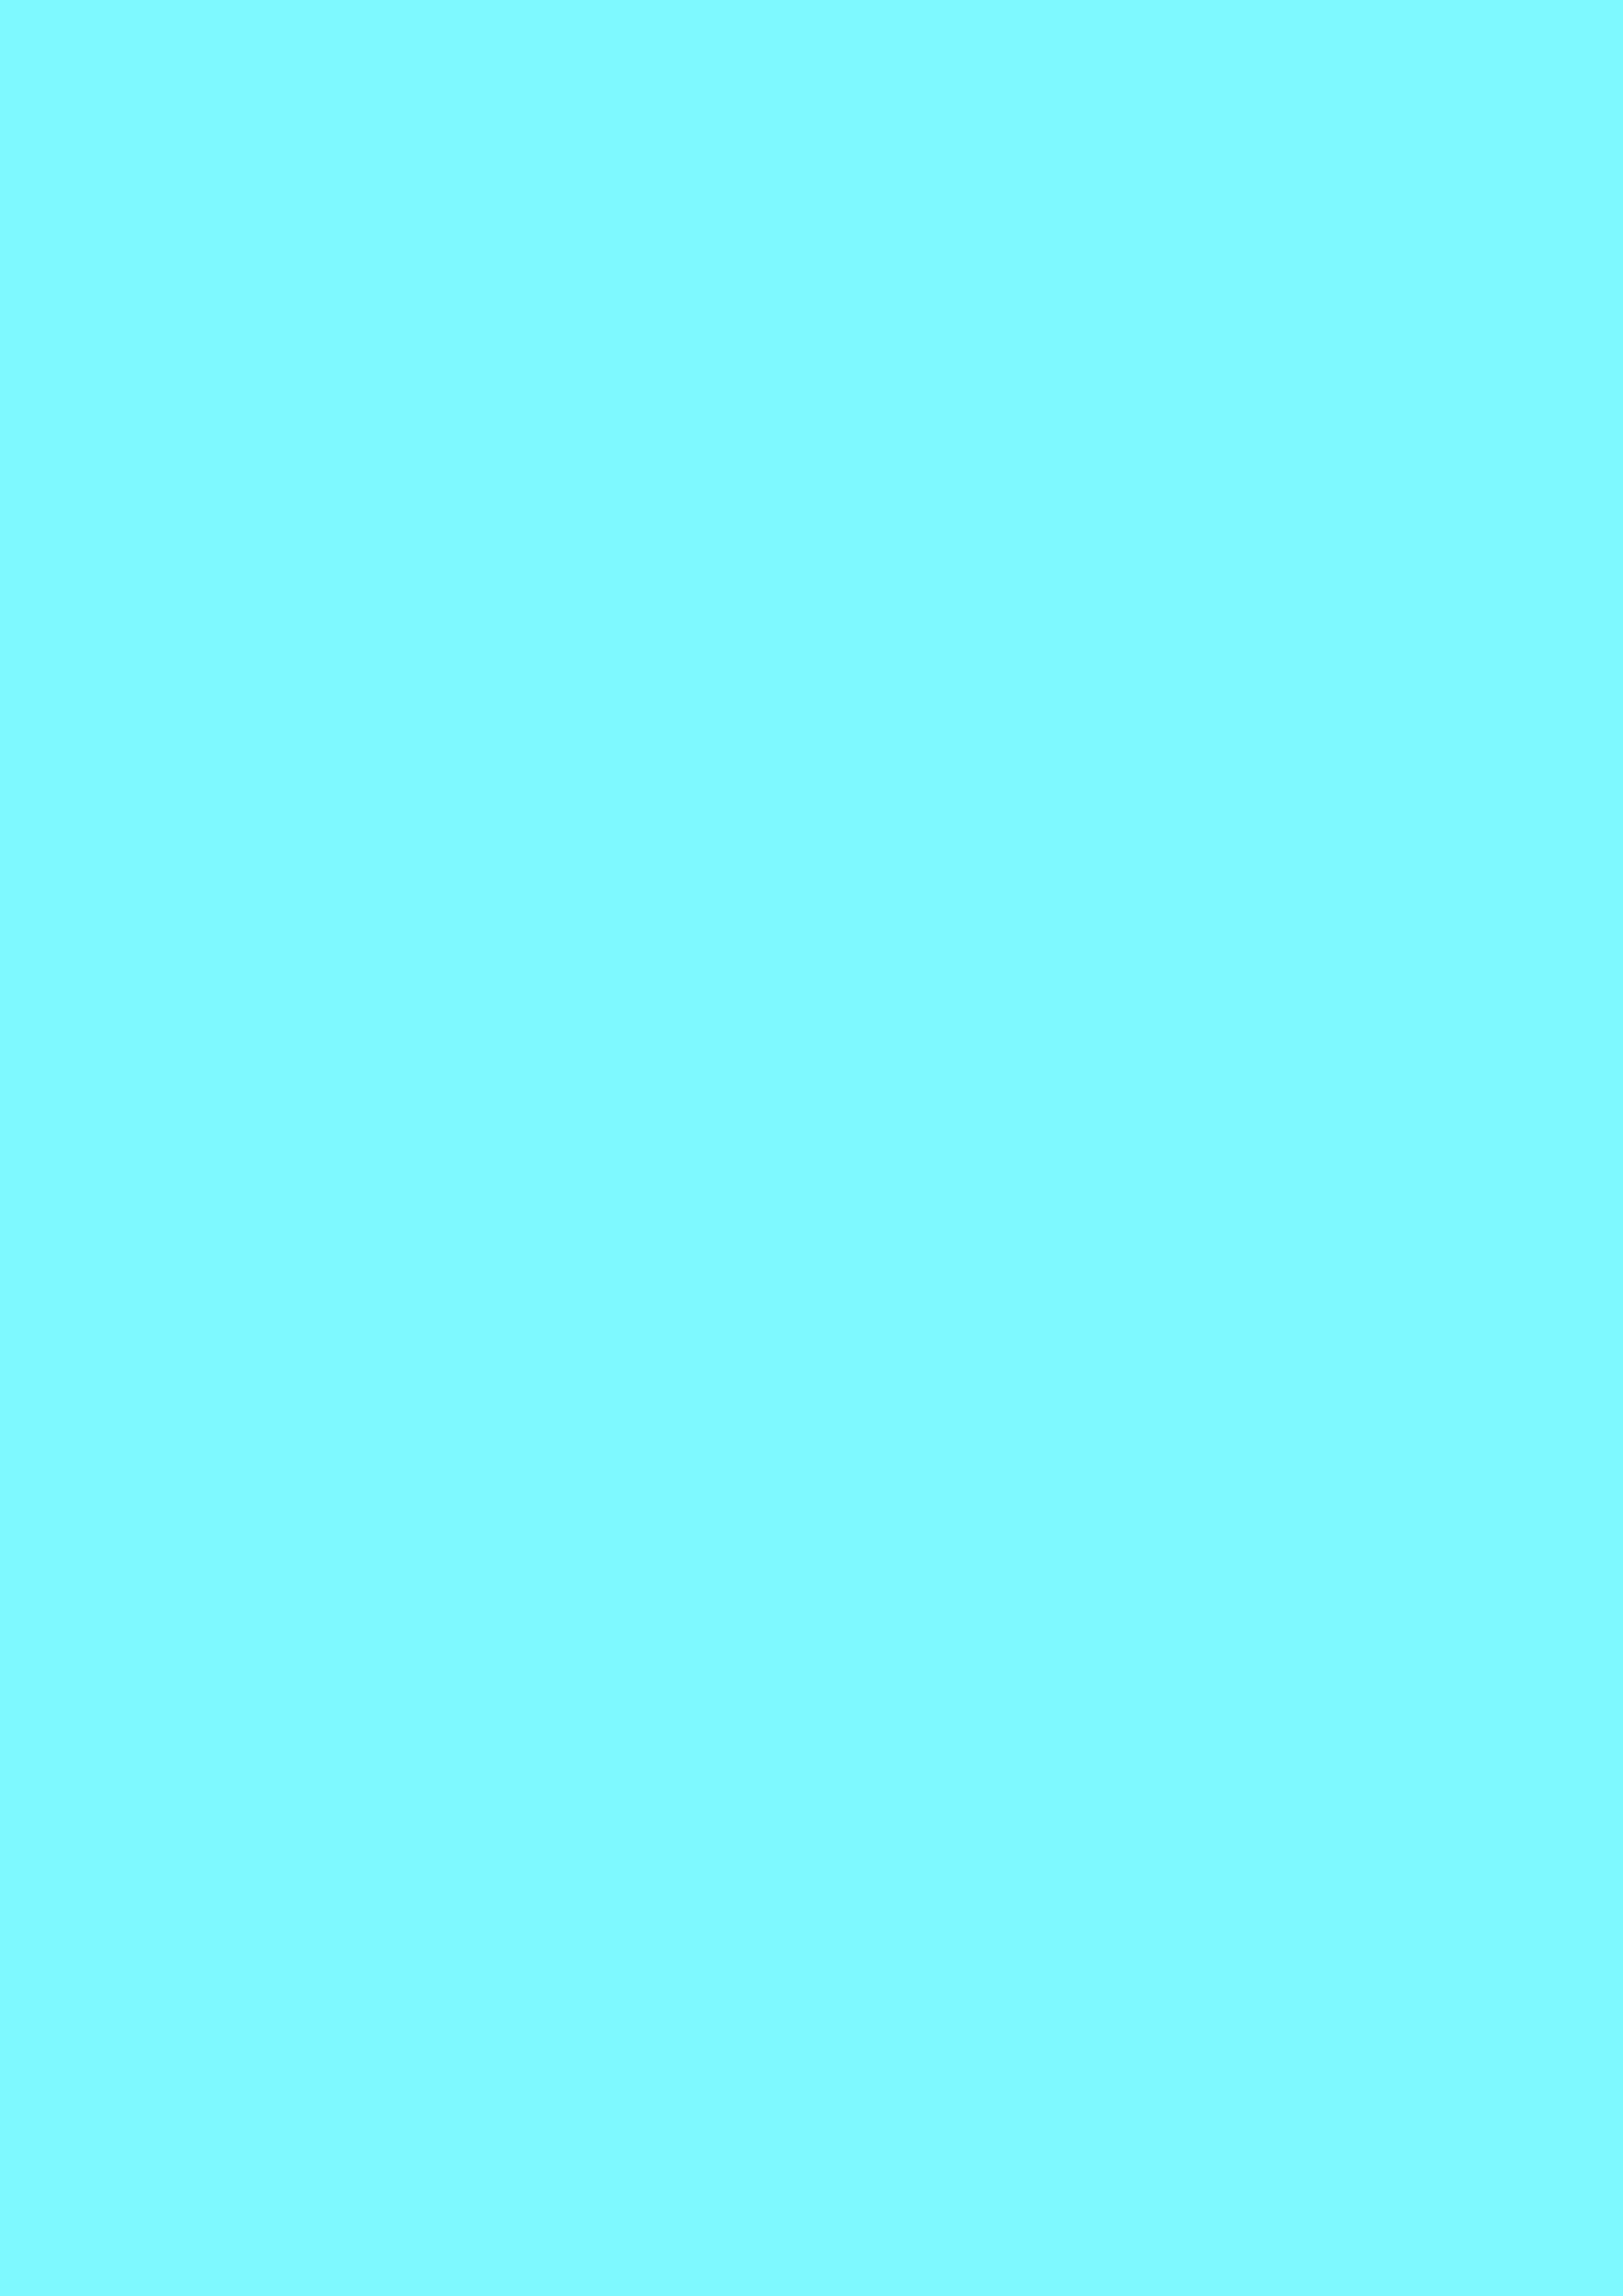 2480x3508 Electric Blue Solid Color Background